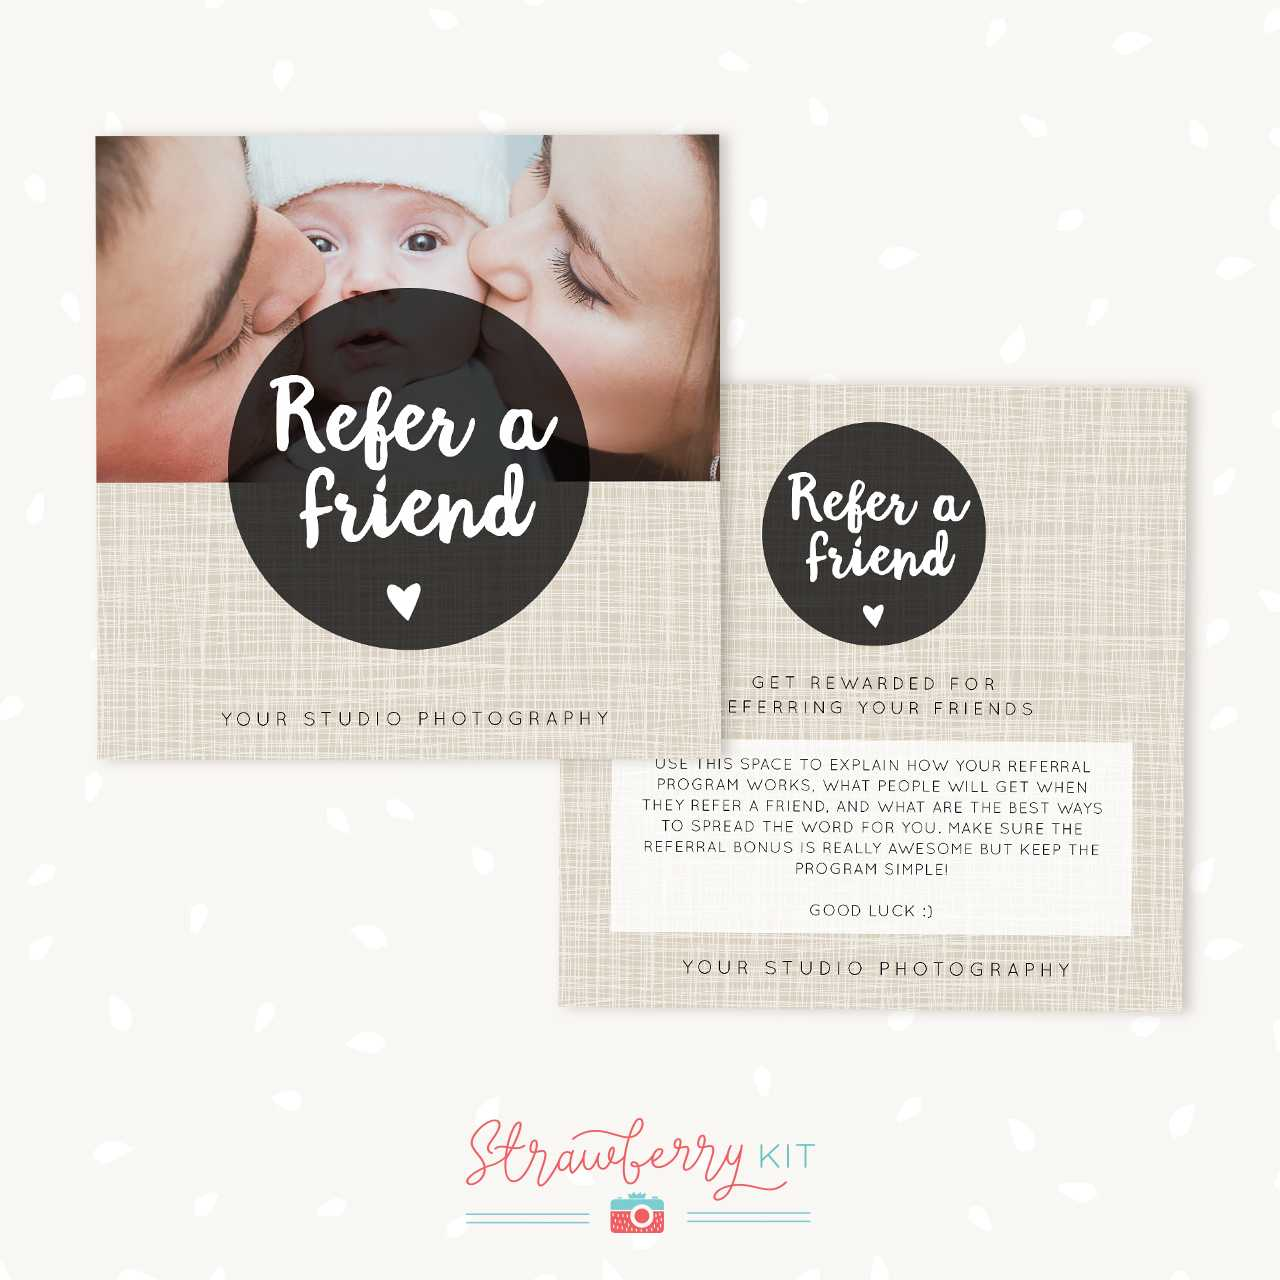 Referral Cards Photoshop Template - Strawberry Kit Throughout Photography Referral Card Templates